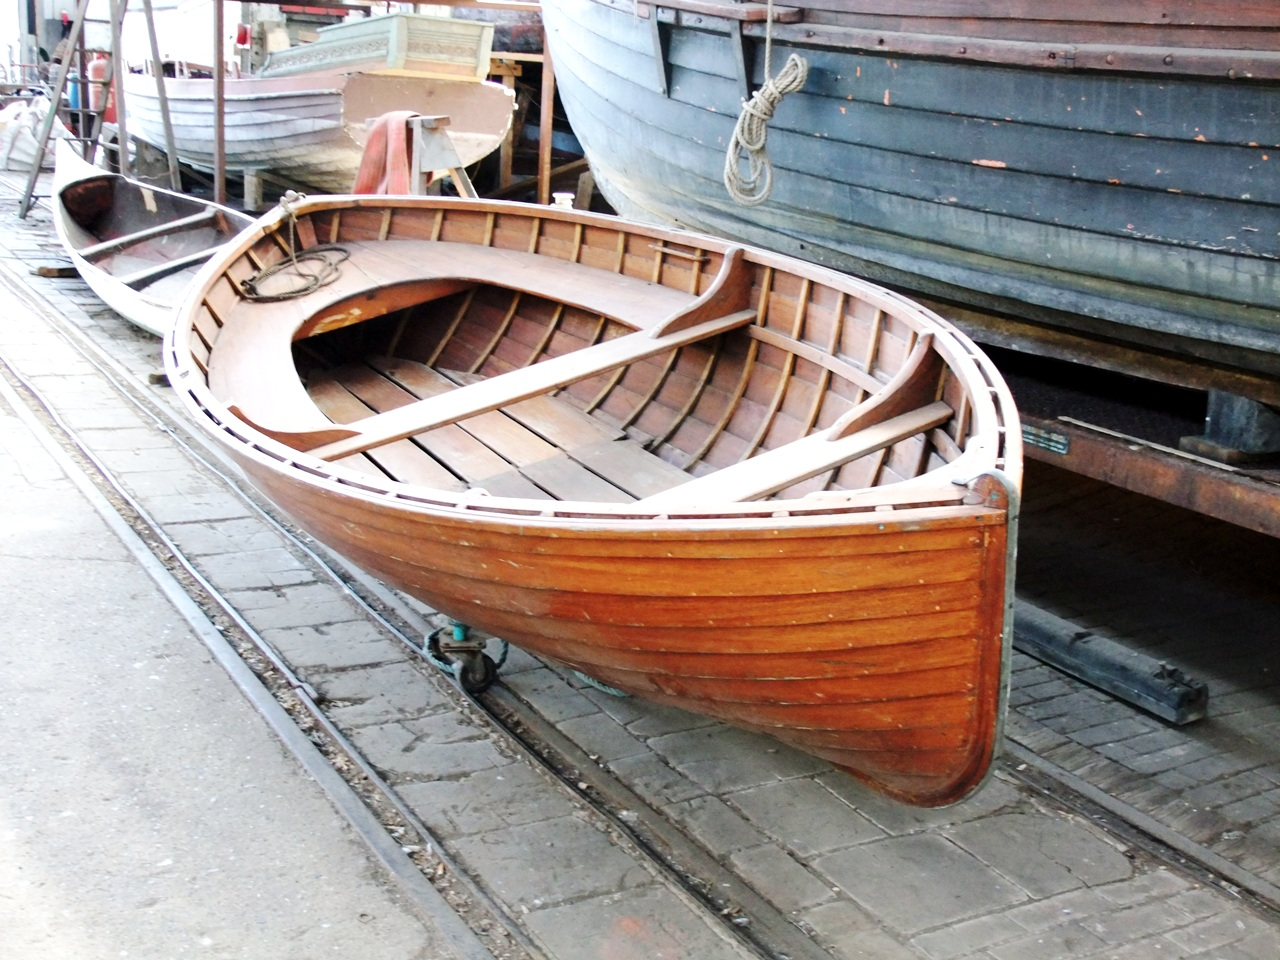 Small Wooden Boats : Turk s auction are you missing the small wooden boat